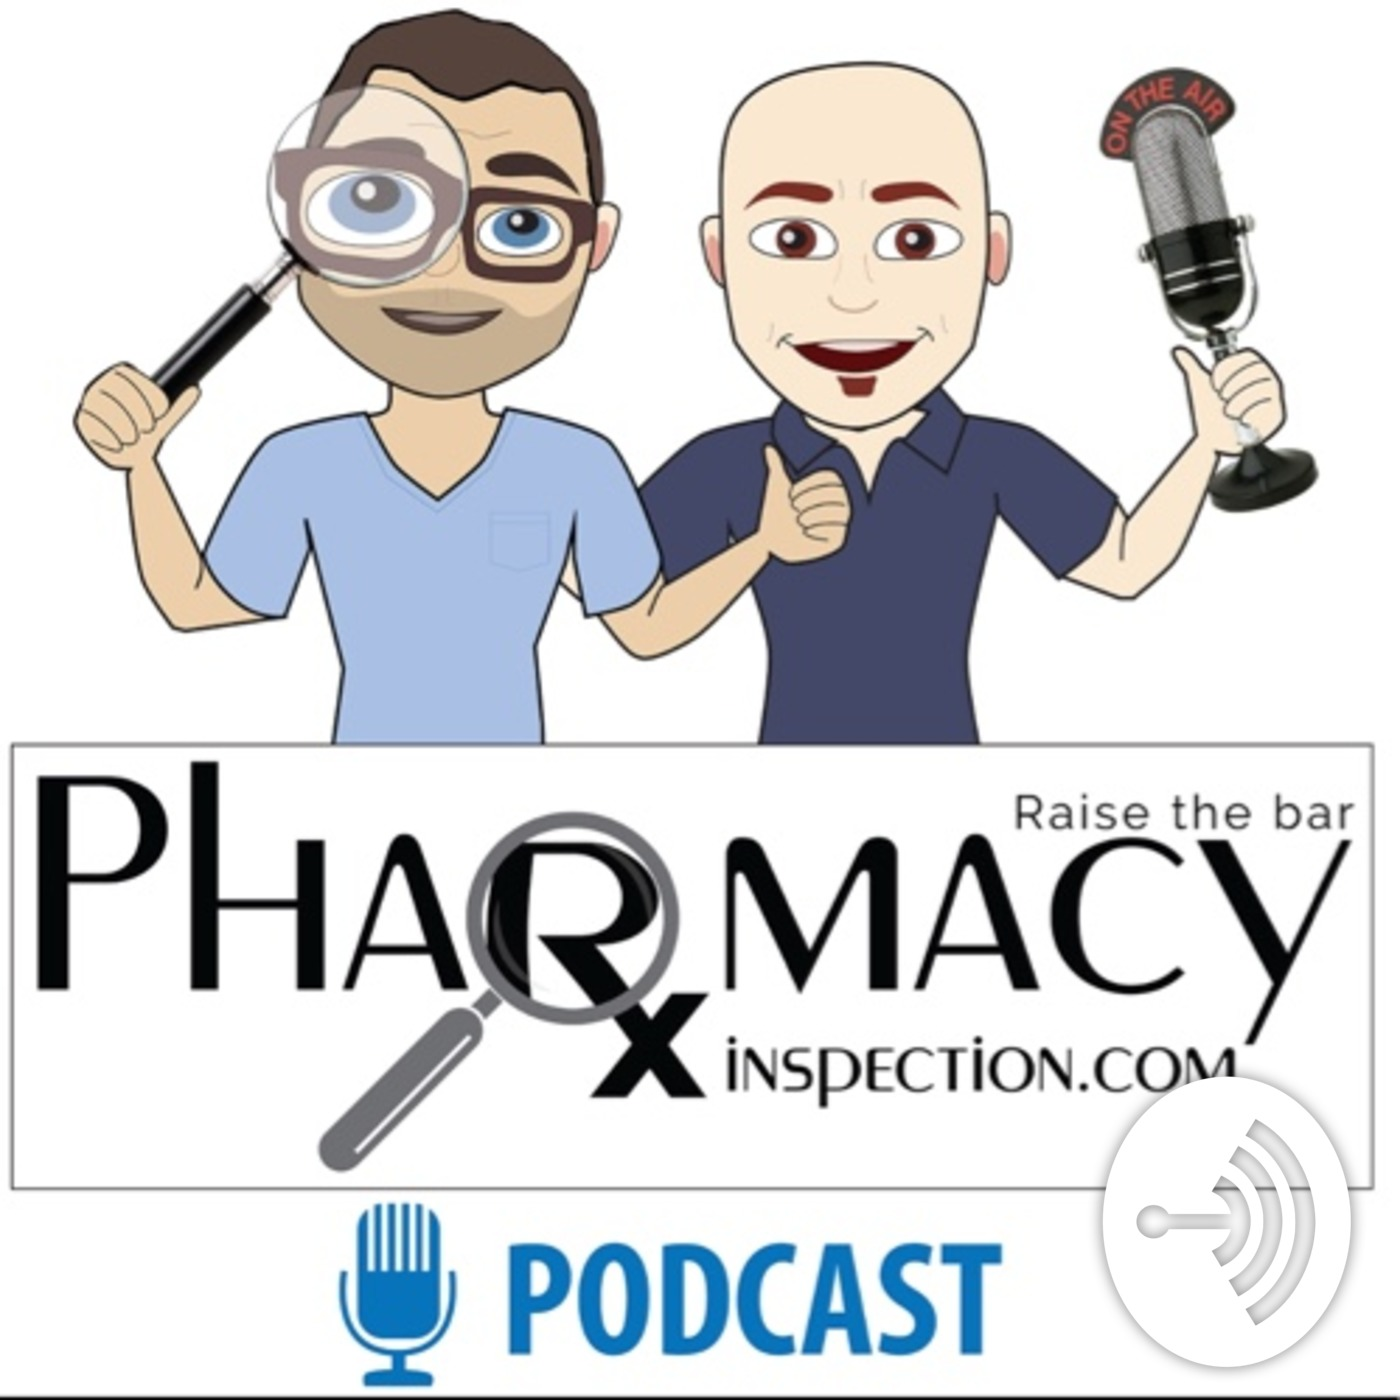 Pharmacy Inspection Podcast Episode 19 - Donnie Calhoun